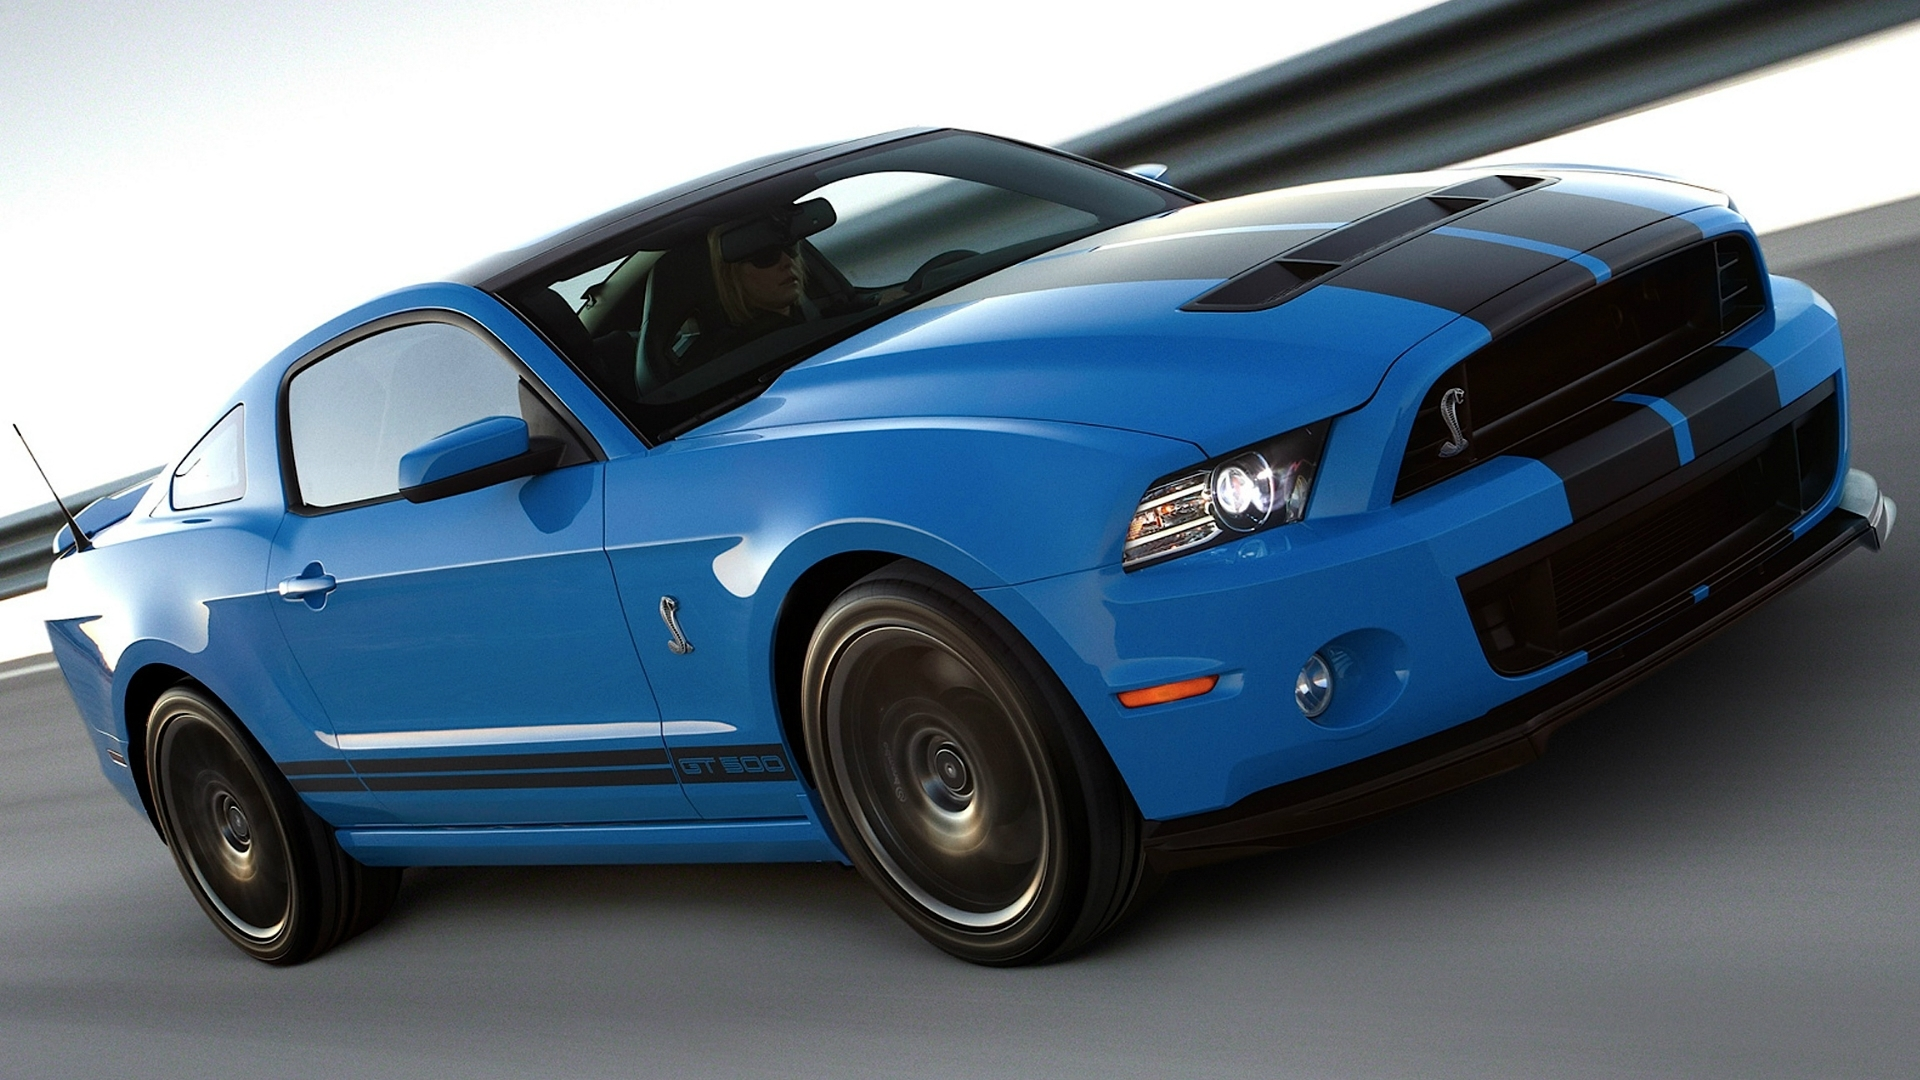 2013 Ford Mustang photo - 1